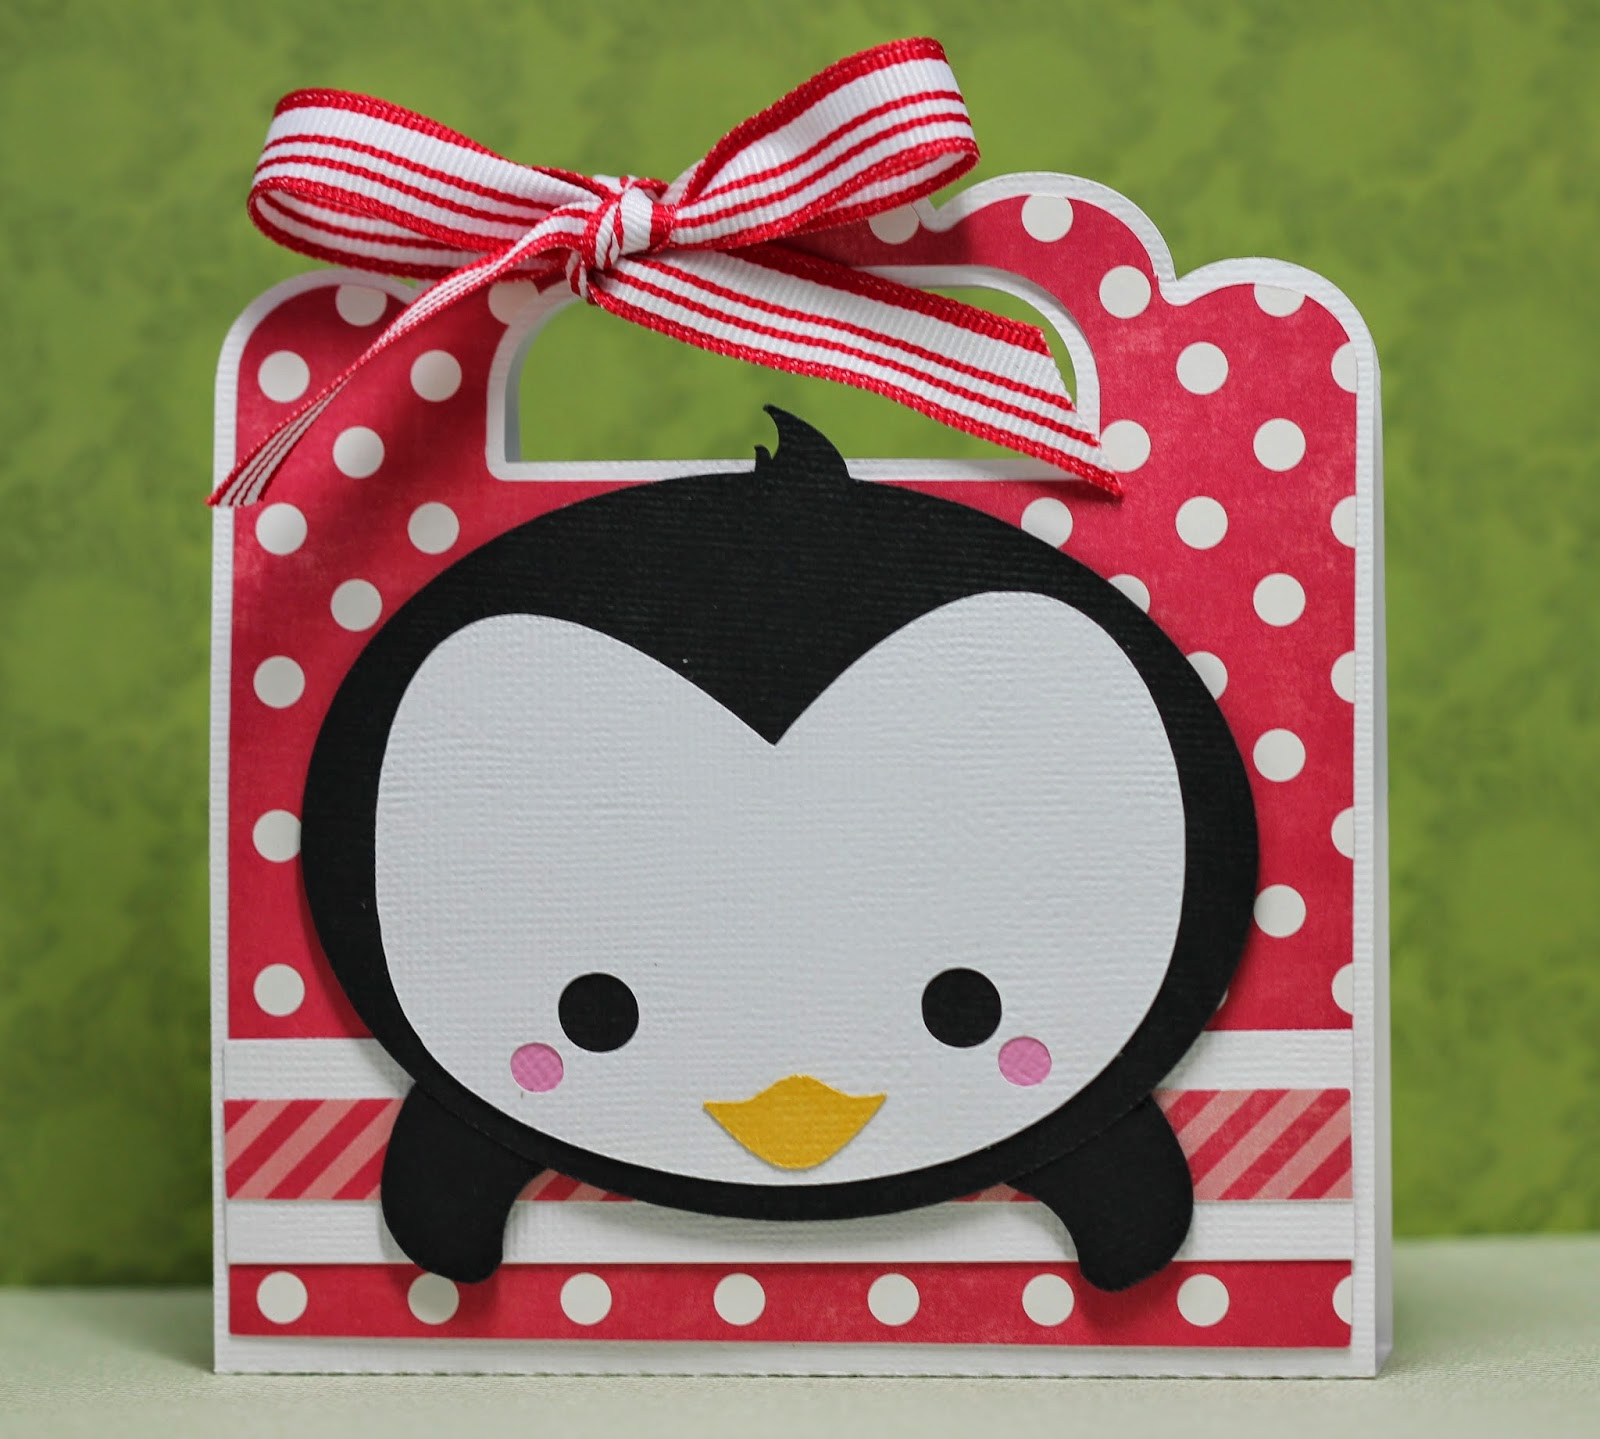 SVG Cutting Files: Christmas Treat Holders!